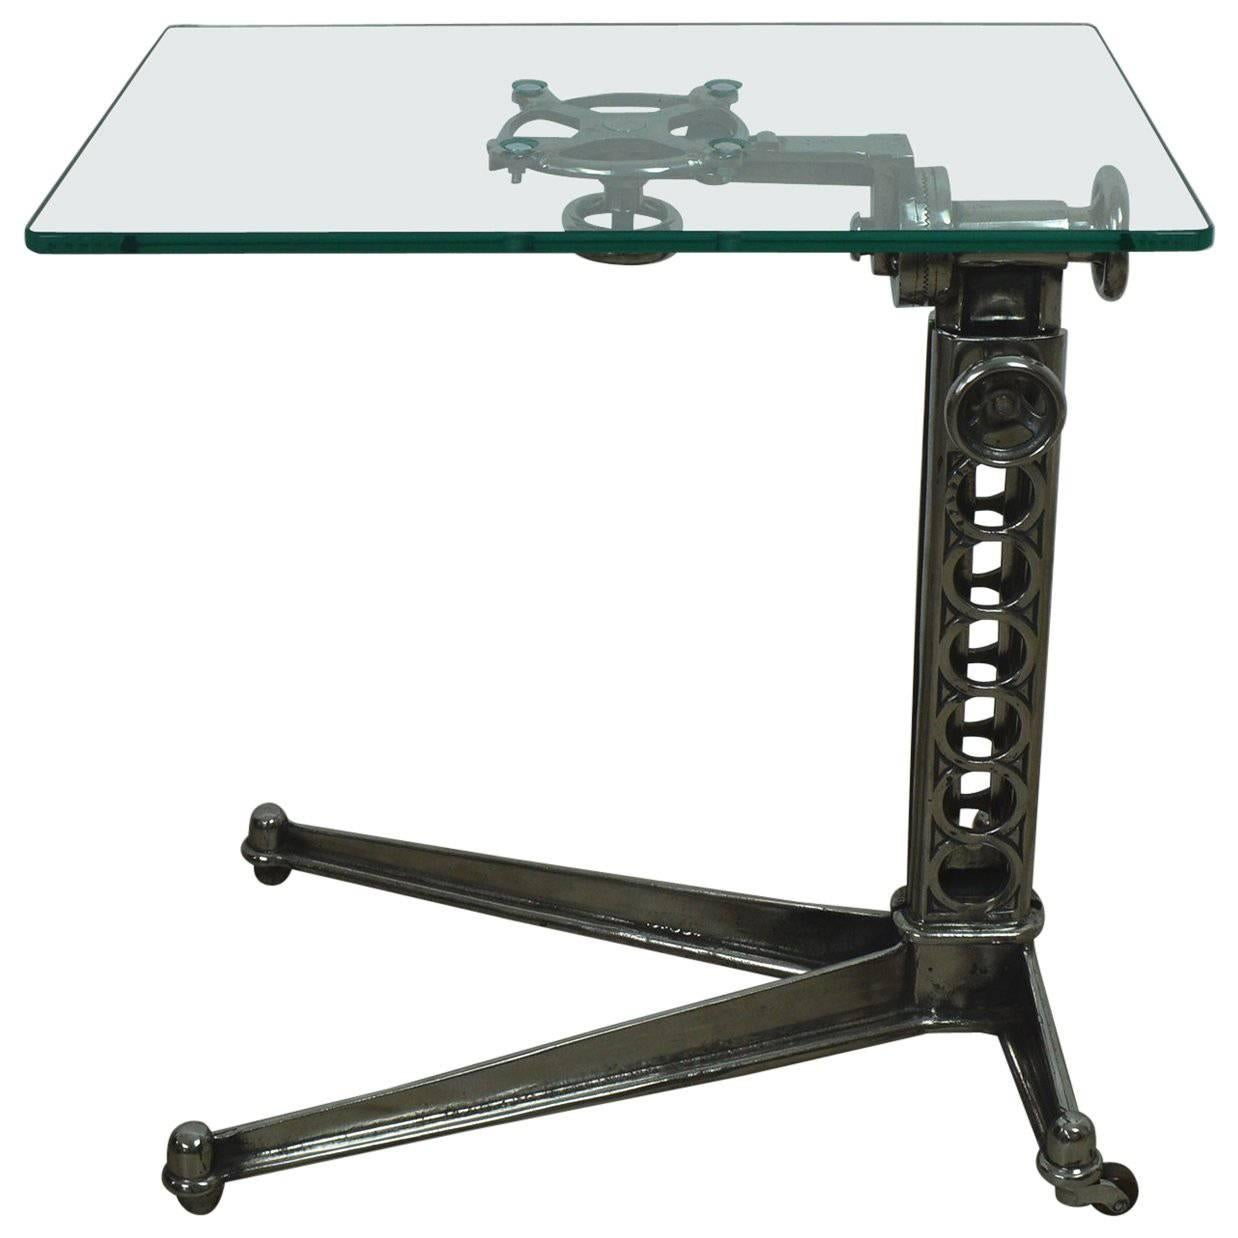 Vintage Industrial Adjustable Work Table, English, 1920s